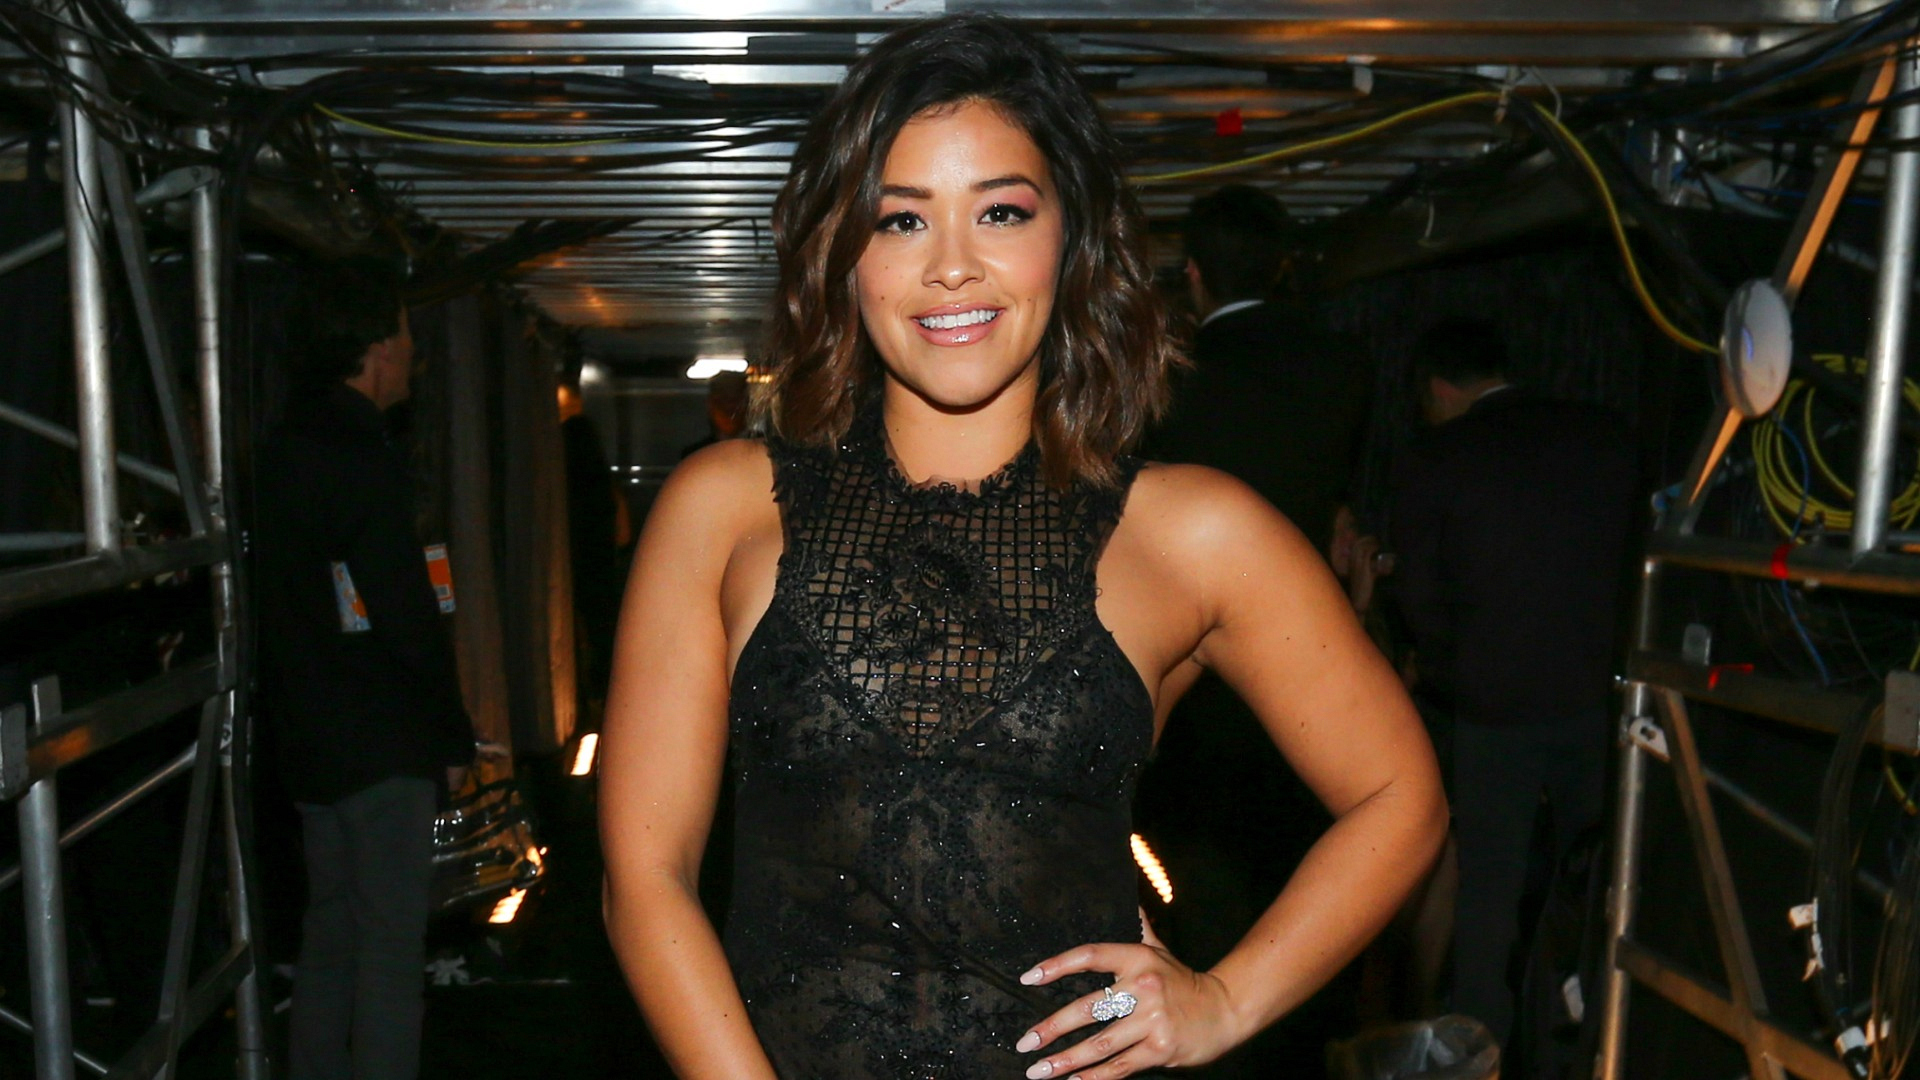 Actress Gina Rodriguez werks it in a black lace dress before introducing a performance from Maren Morris and Alicia Keys.